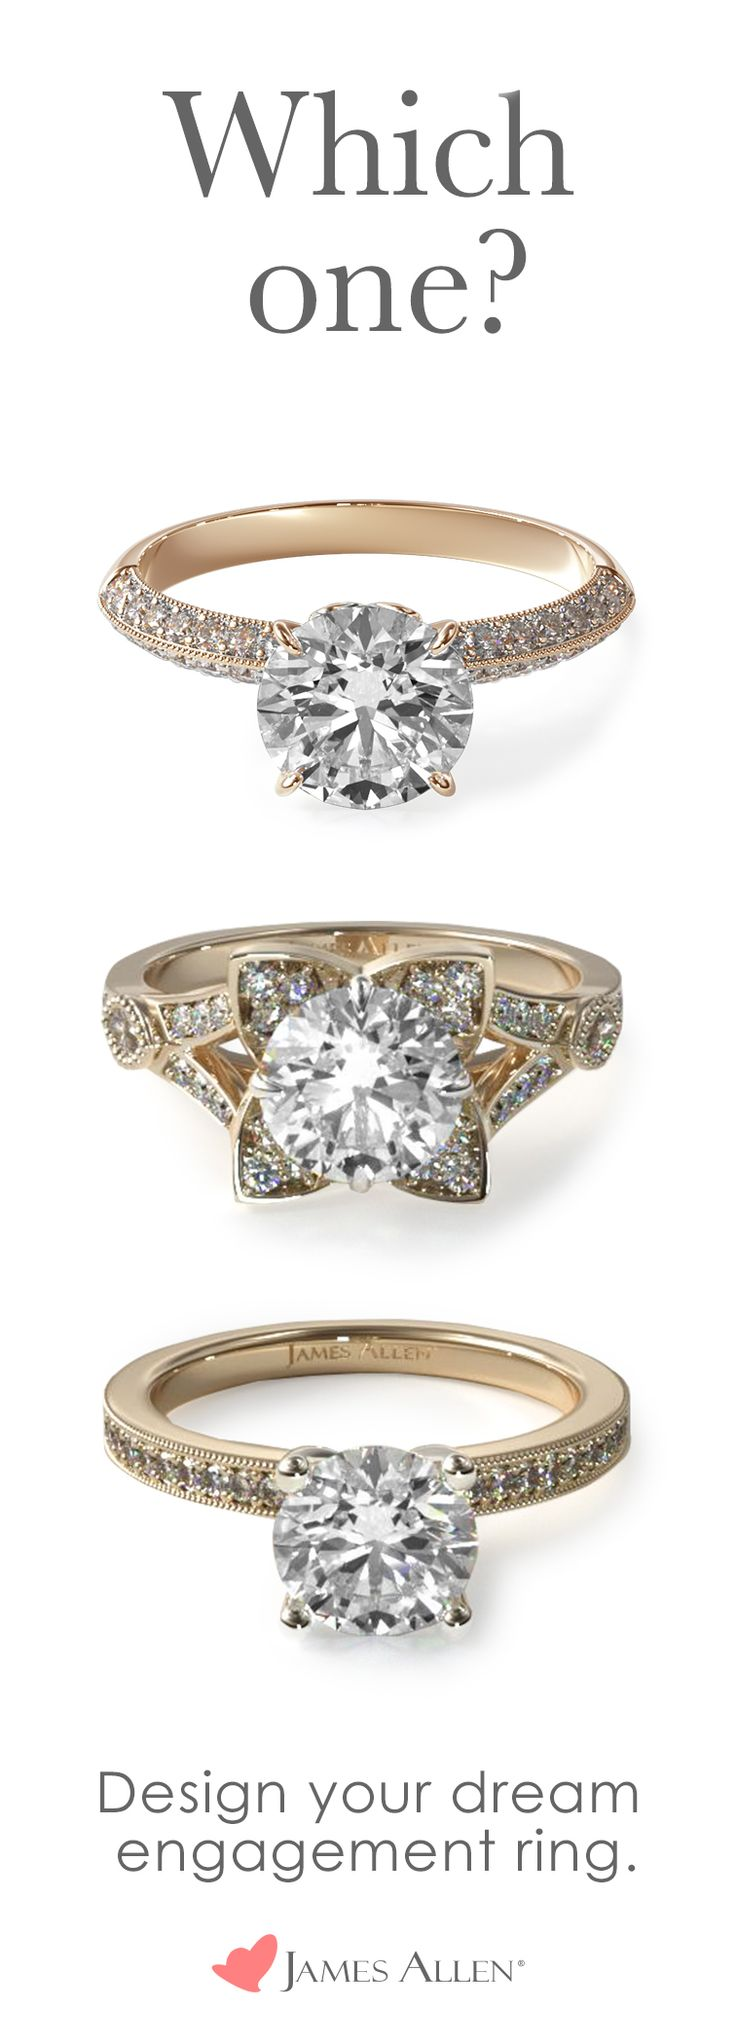 From Solitaire To Vintage And Contemporary Settings, Find The Perfect Ring  Style For Your Personality